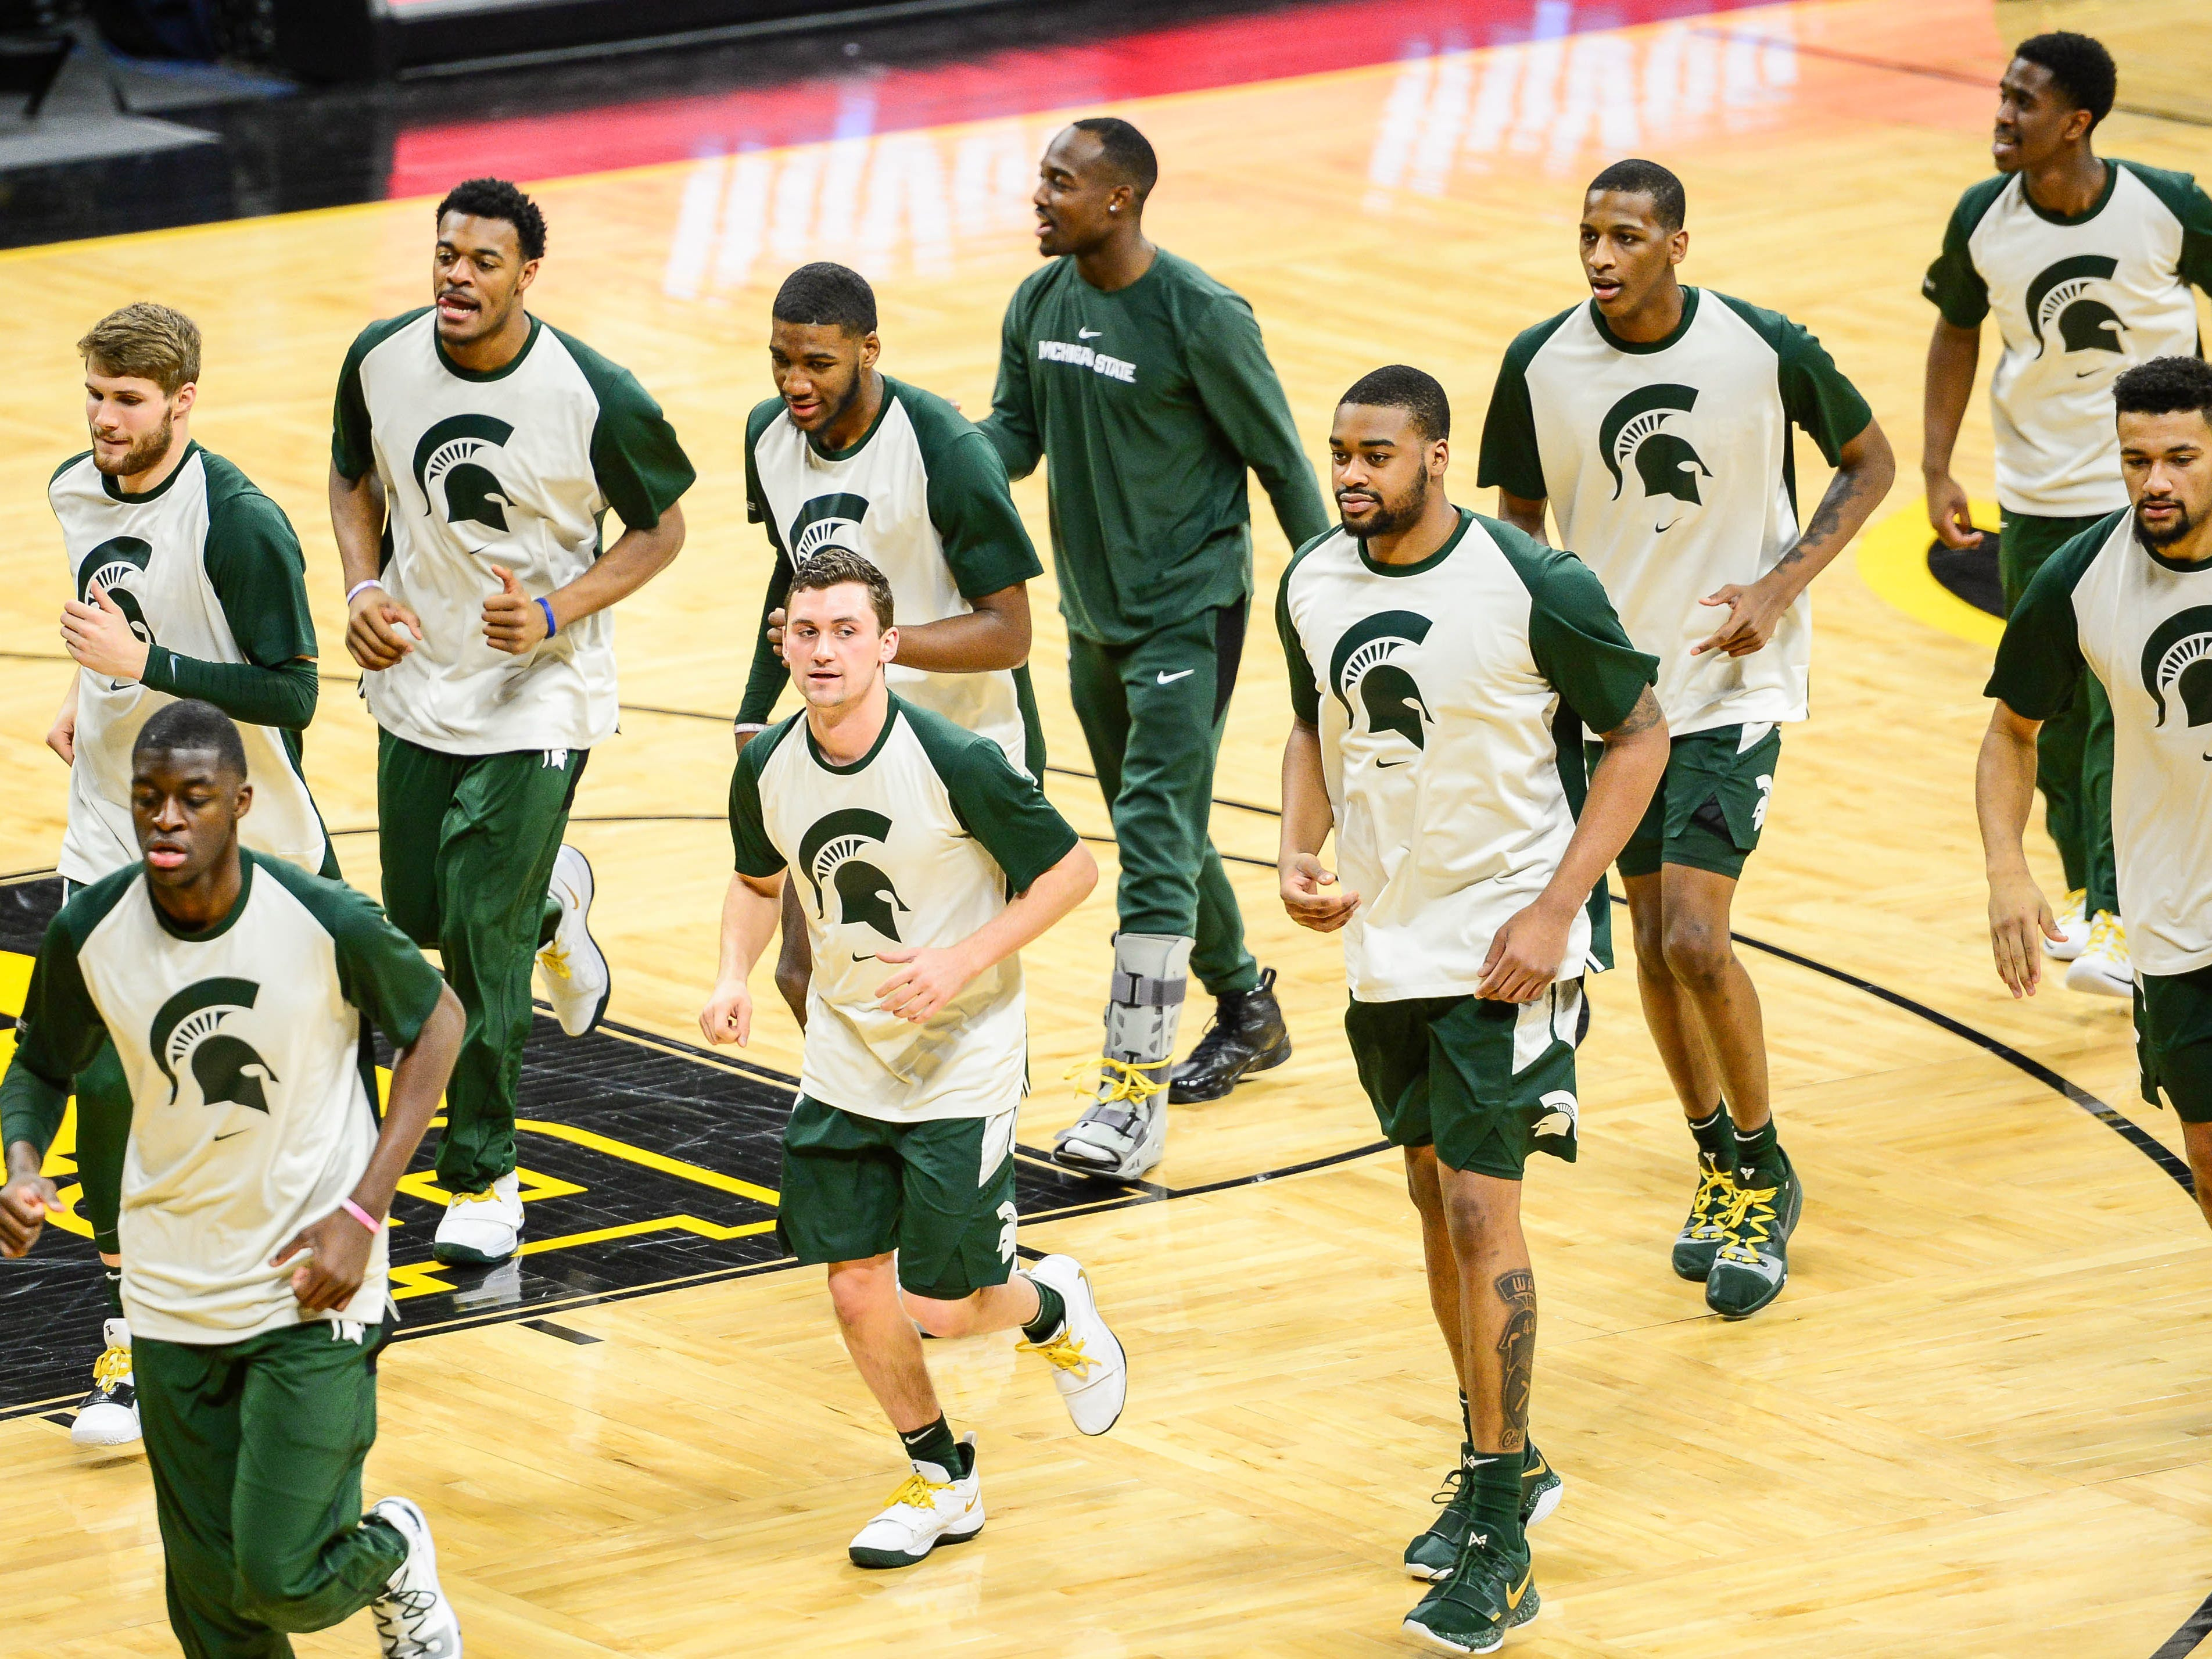 Michigan State Spartans player run off the court prior to their game against the Iowa Hawkeyes at Carver-Hawkeye Arena.